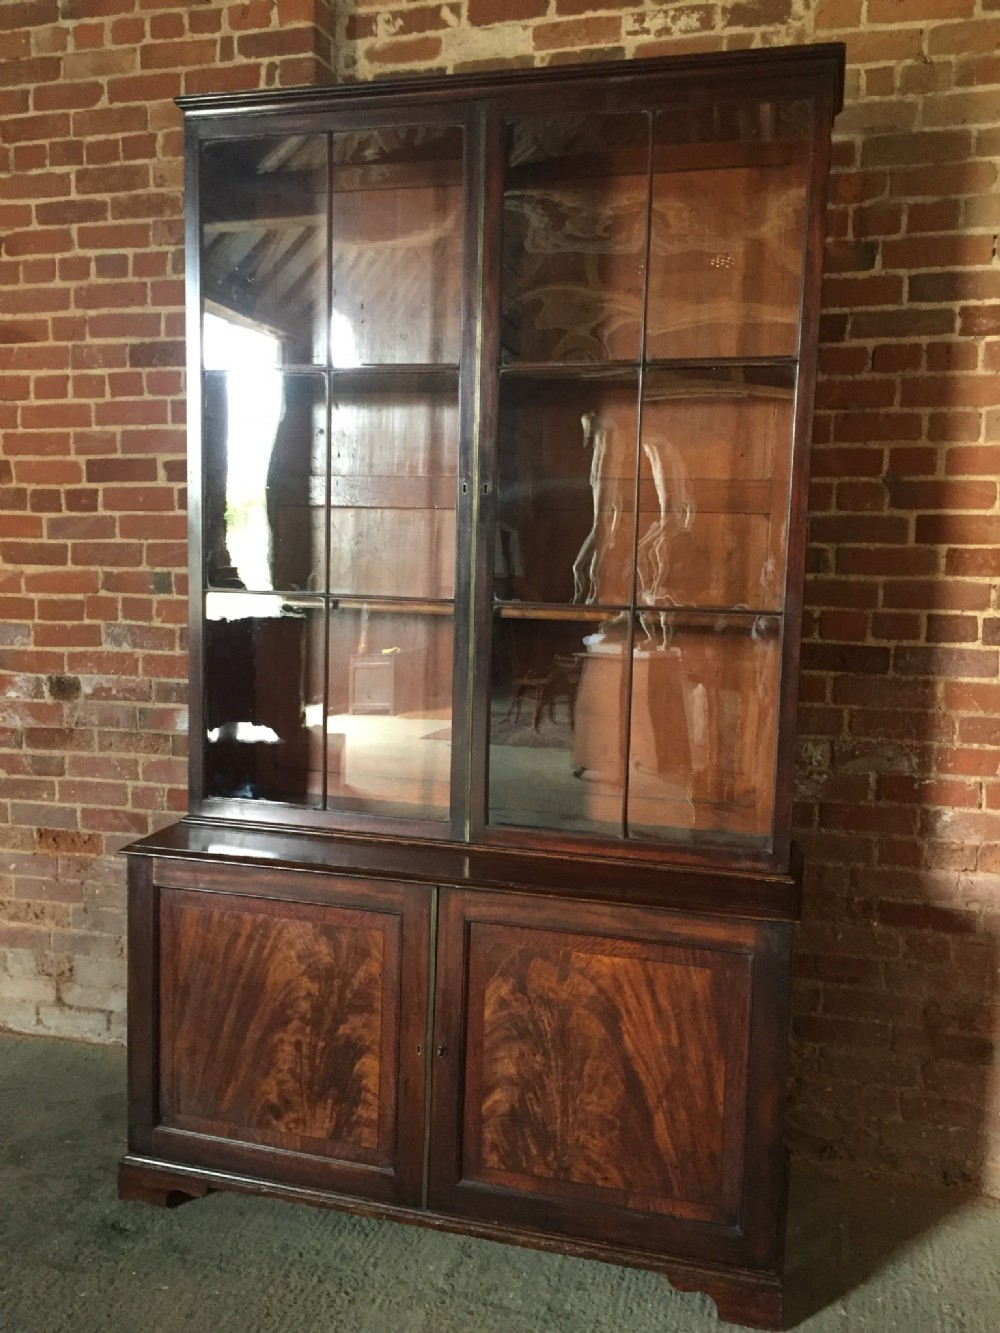 fine c18th early george iii period mahogany library bookcase with a fitted cupboard base in outstanding totally original and untouched condition